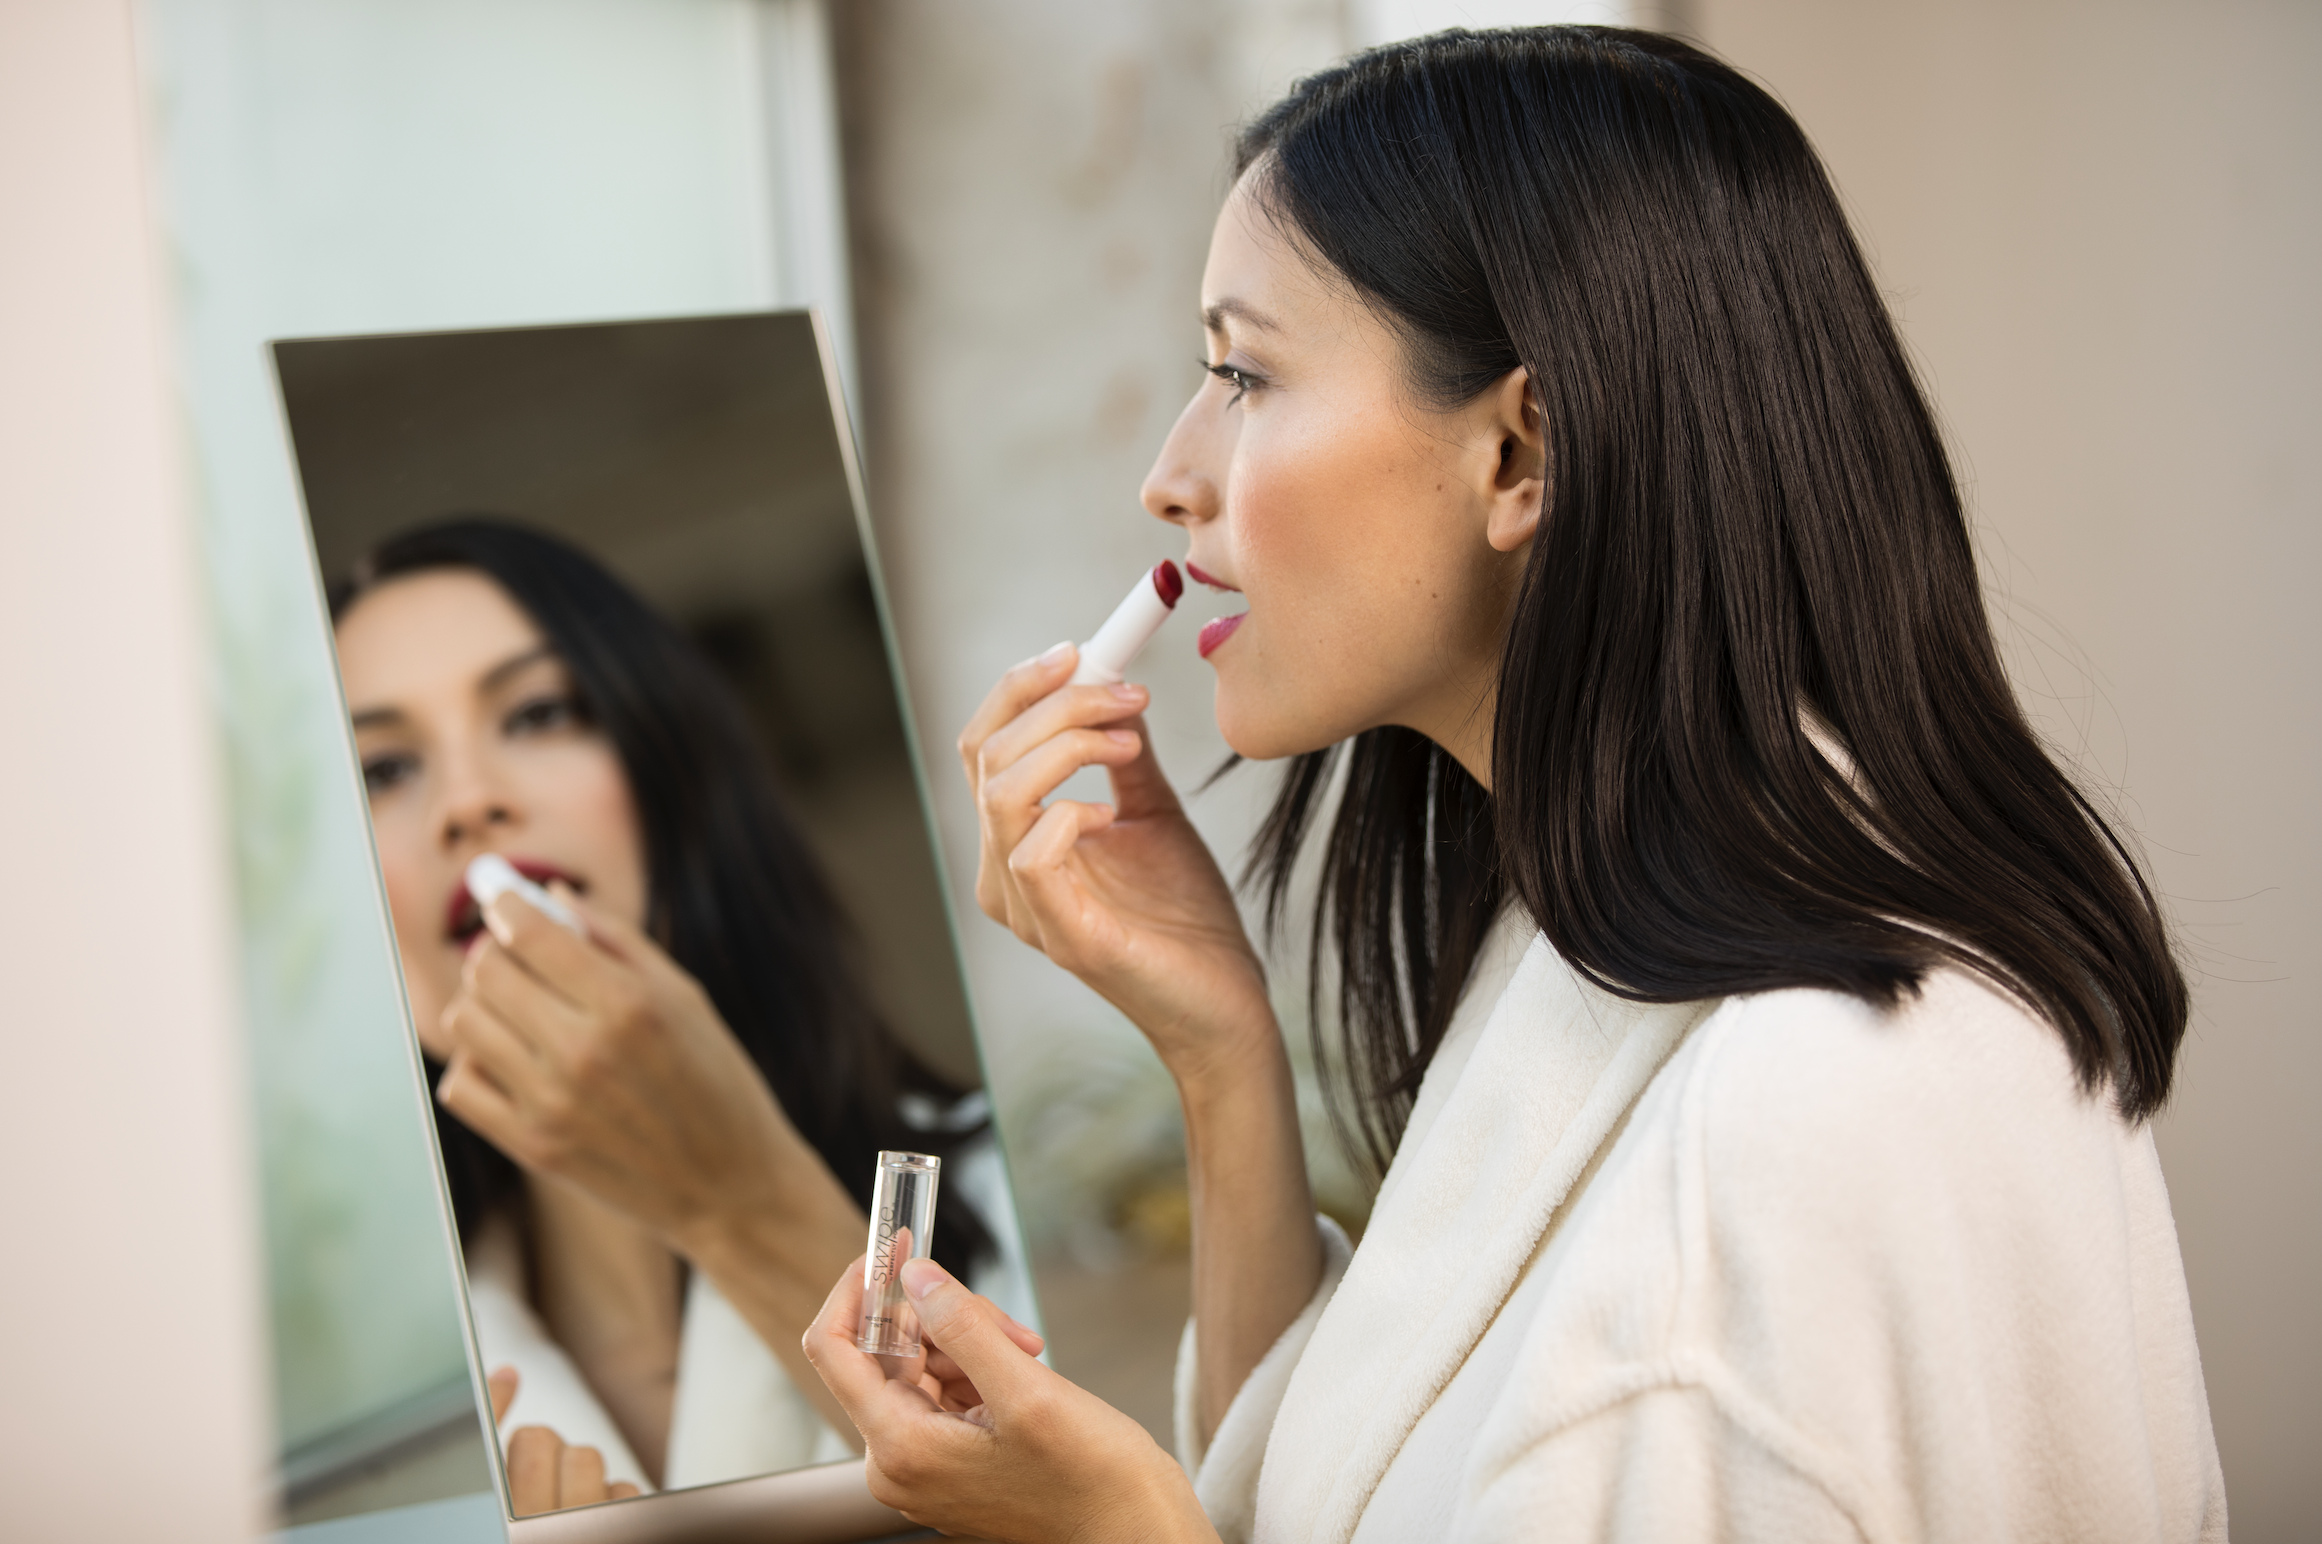 Perfectly Posh Swipe Moisture Tint plumping model's lips in mirror with fluffy white bathrobe, best lip routine for pampered lips